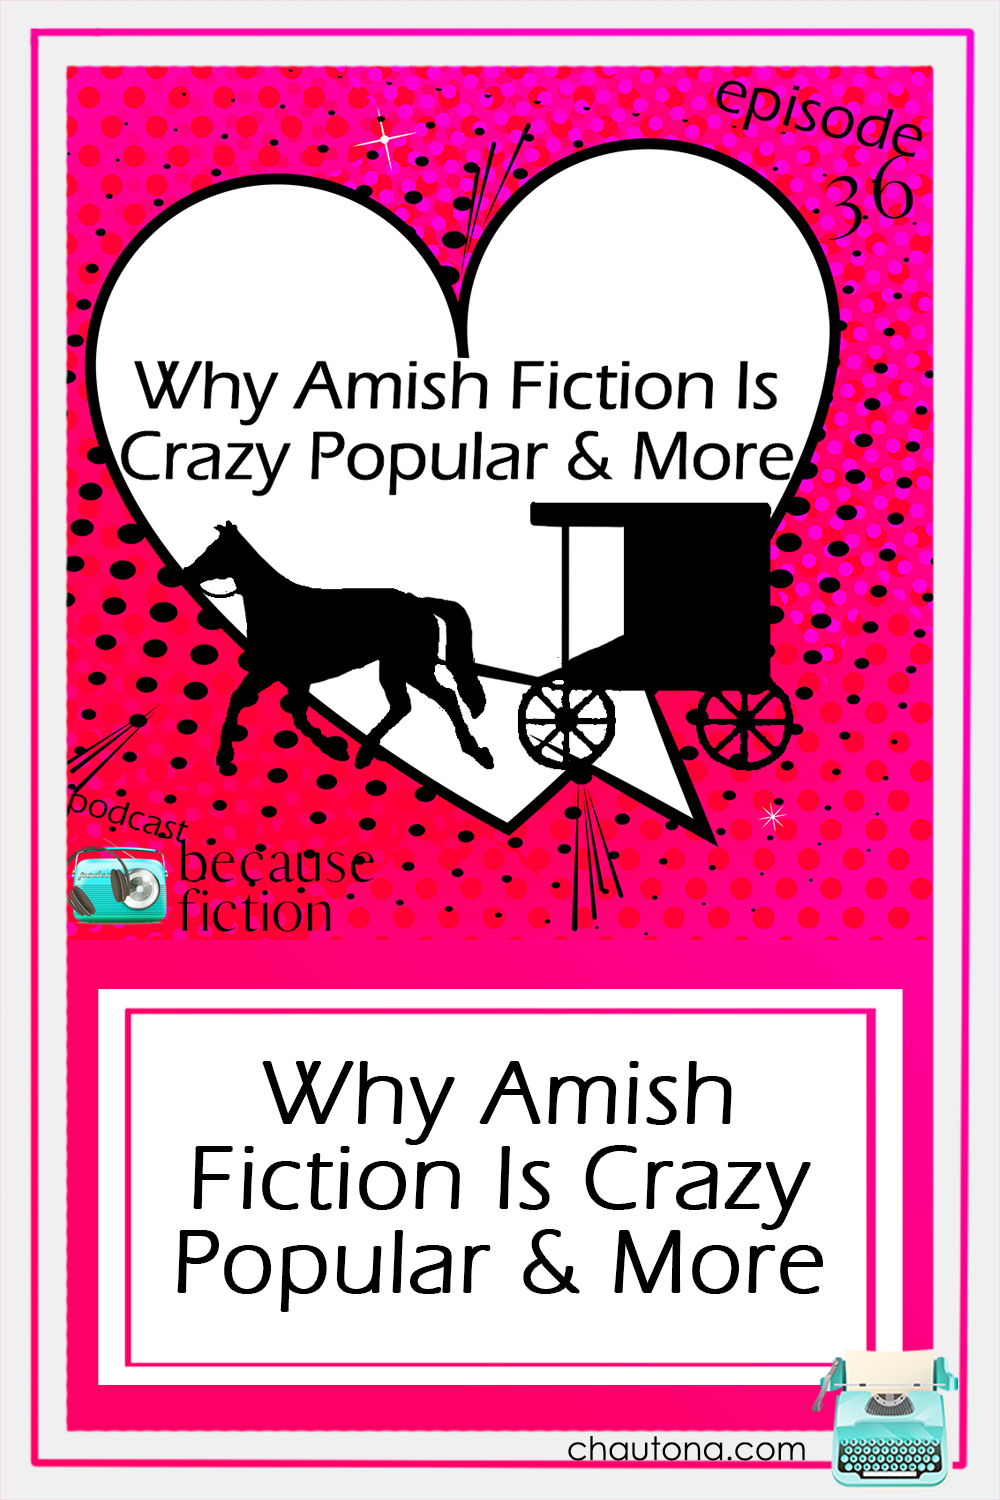 Why Amish Fiction Is Crazy Popular & More